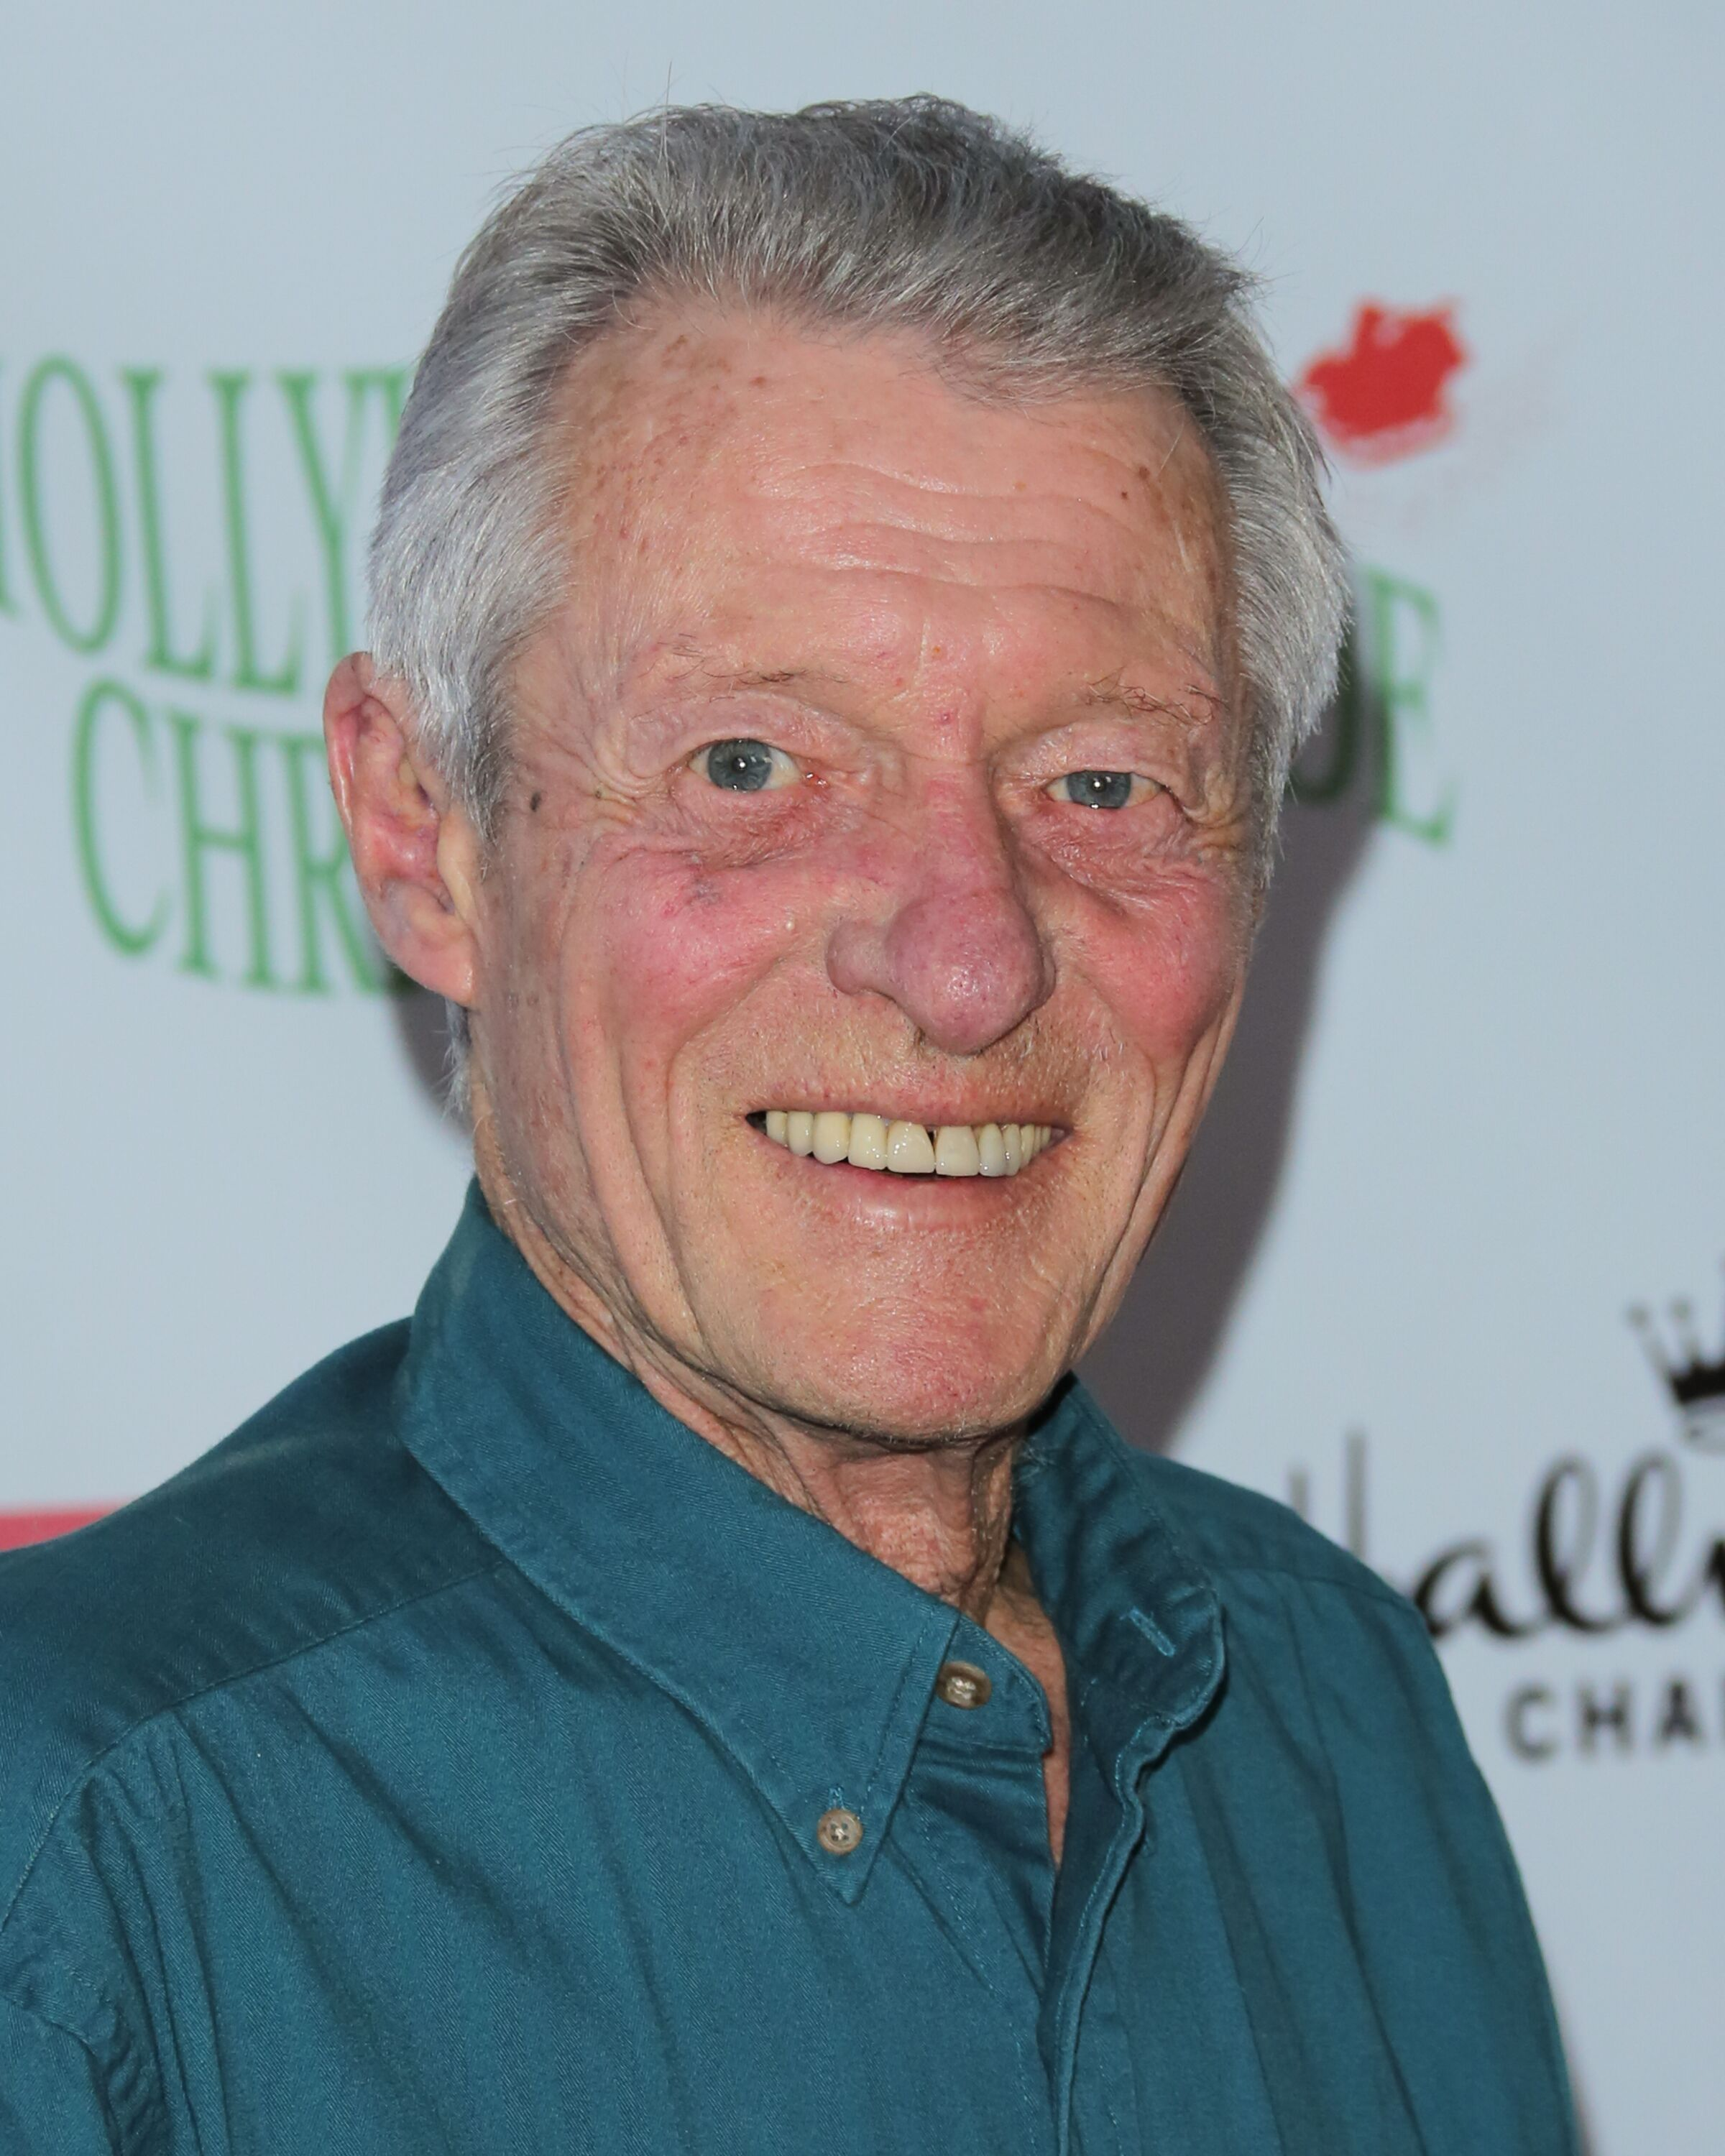 Ken Osmond at The Hollywood Christmas Parade benefiting the Toys For Tots Foundation on December 1, 2013 in Hollywood, California   Photo: Getty Images